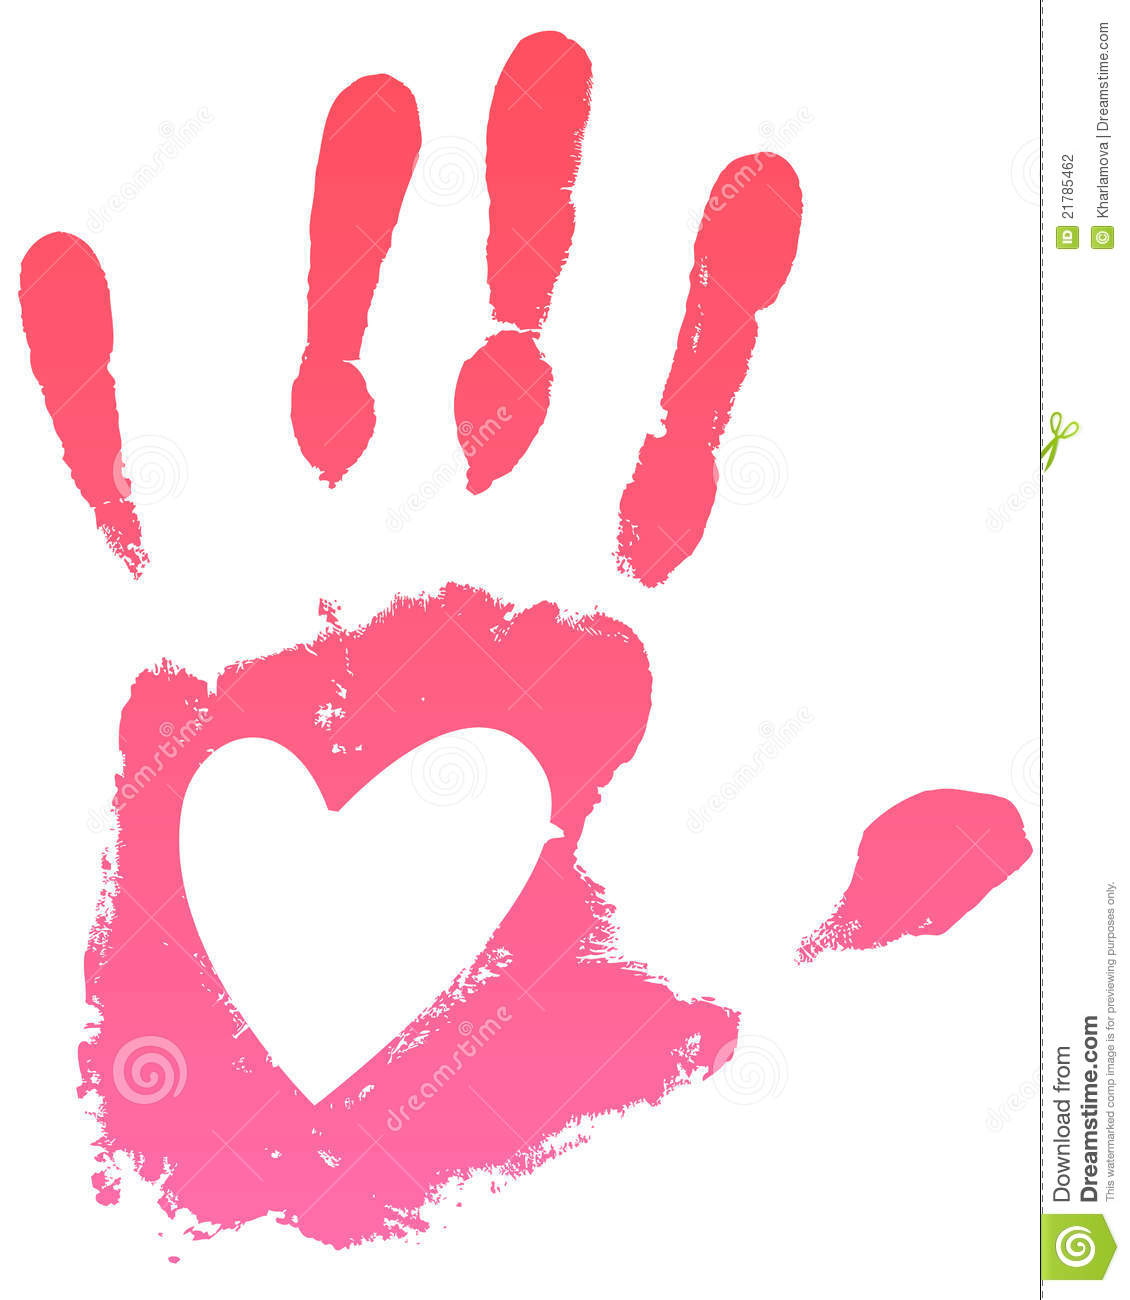 Handprint Heart Clipart Pink Handprint With Heart